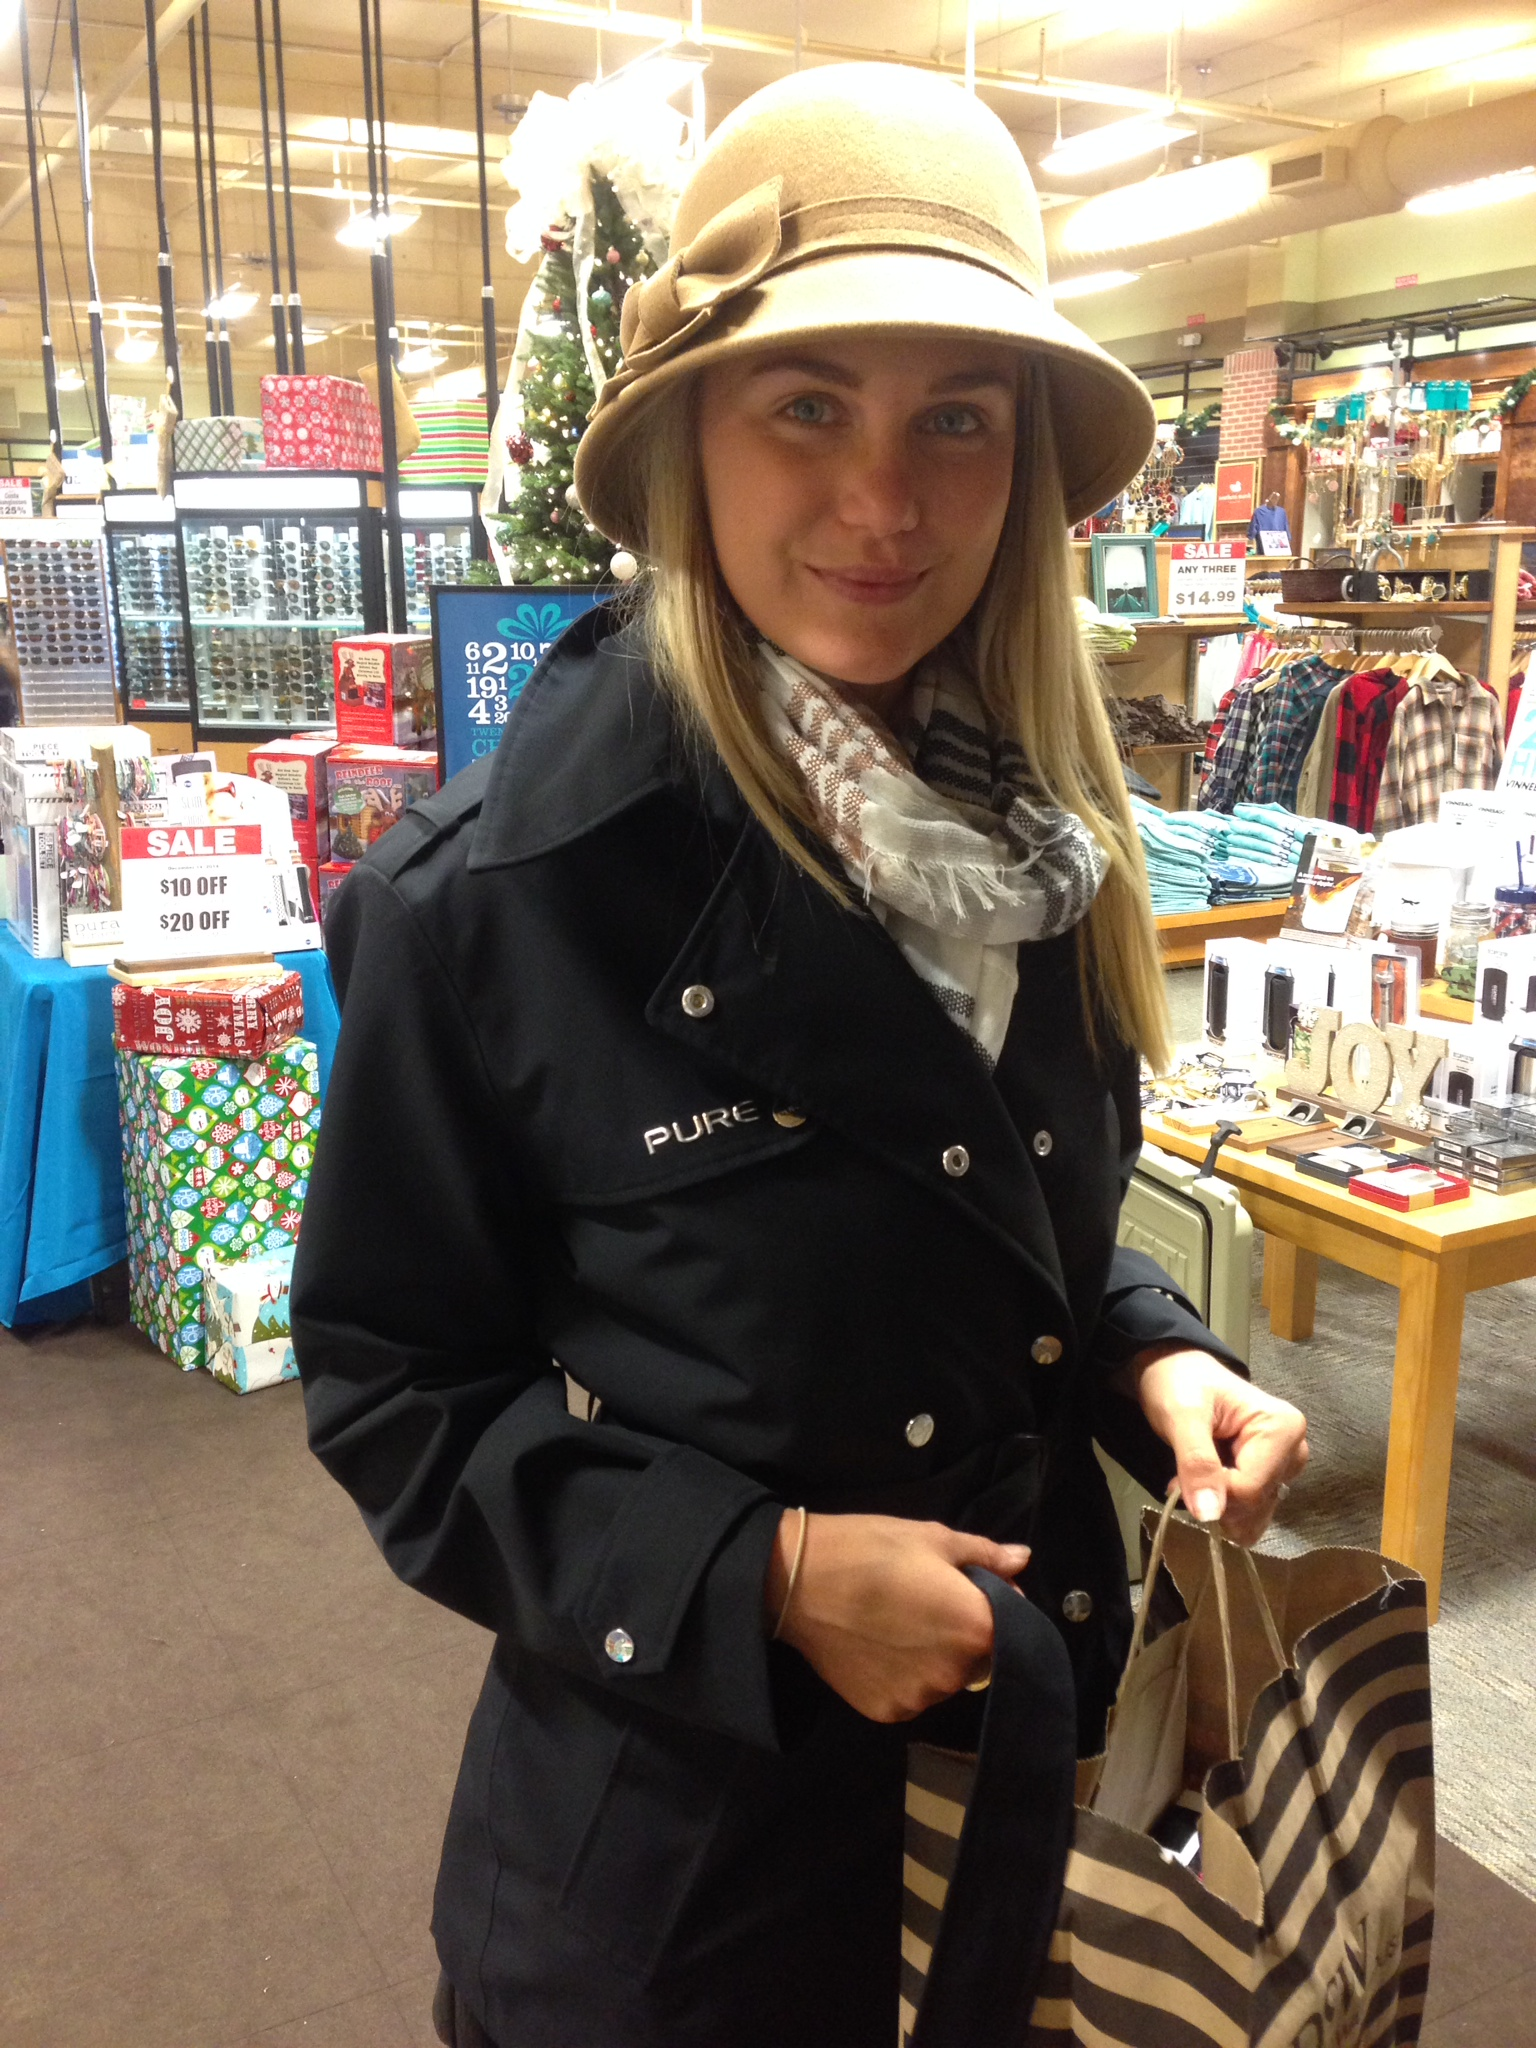 Amber looking stylish while shopping in America